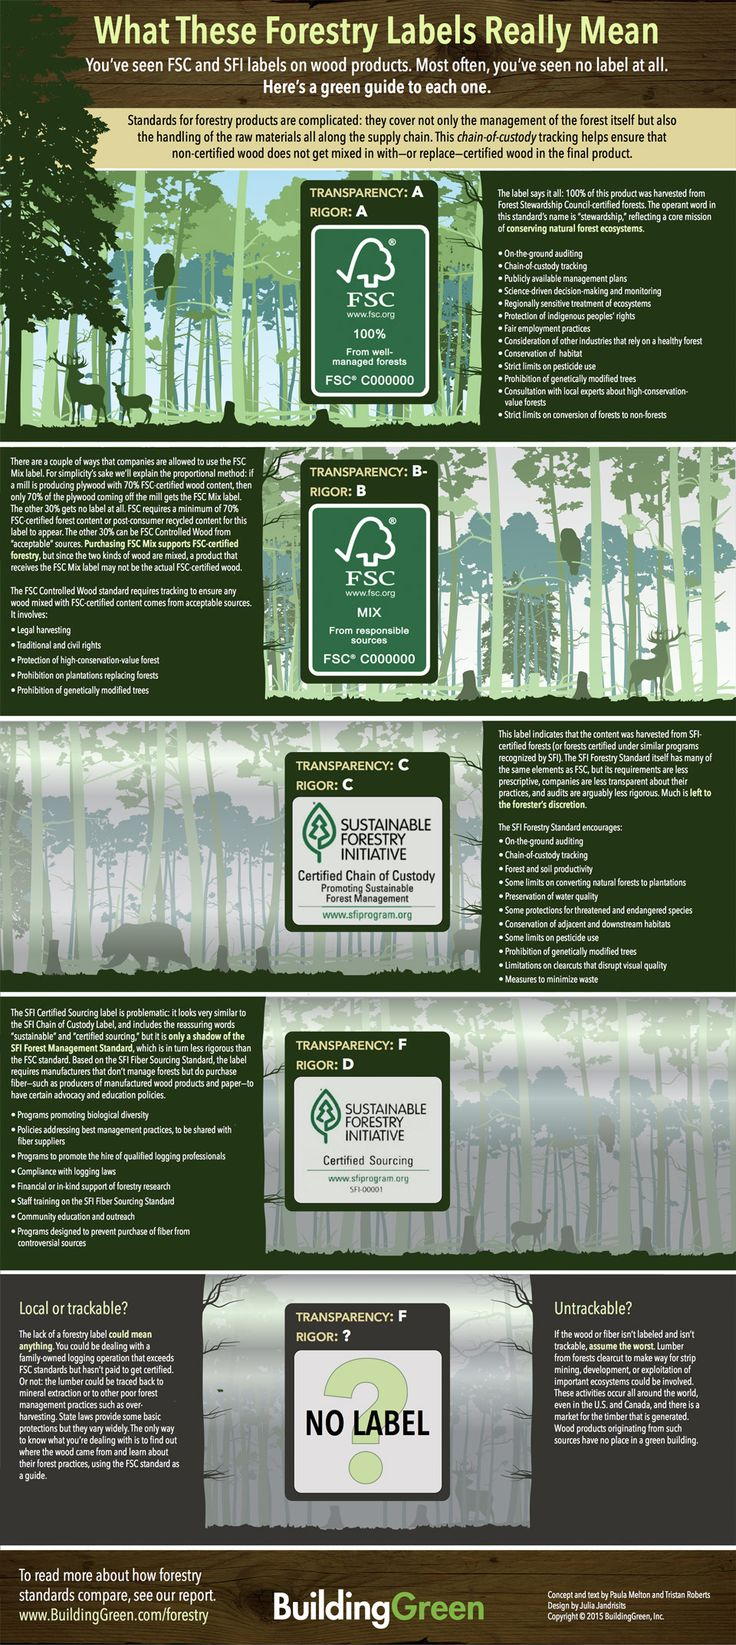 What Forestry Labels Really Mean - BuildingGreen's guide to forest management, chain-of-custody tracking and more